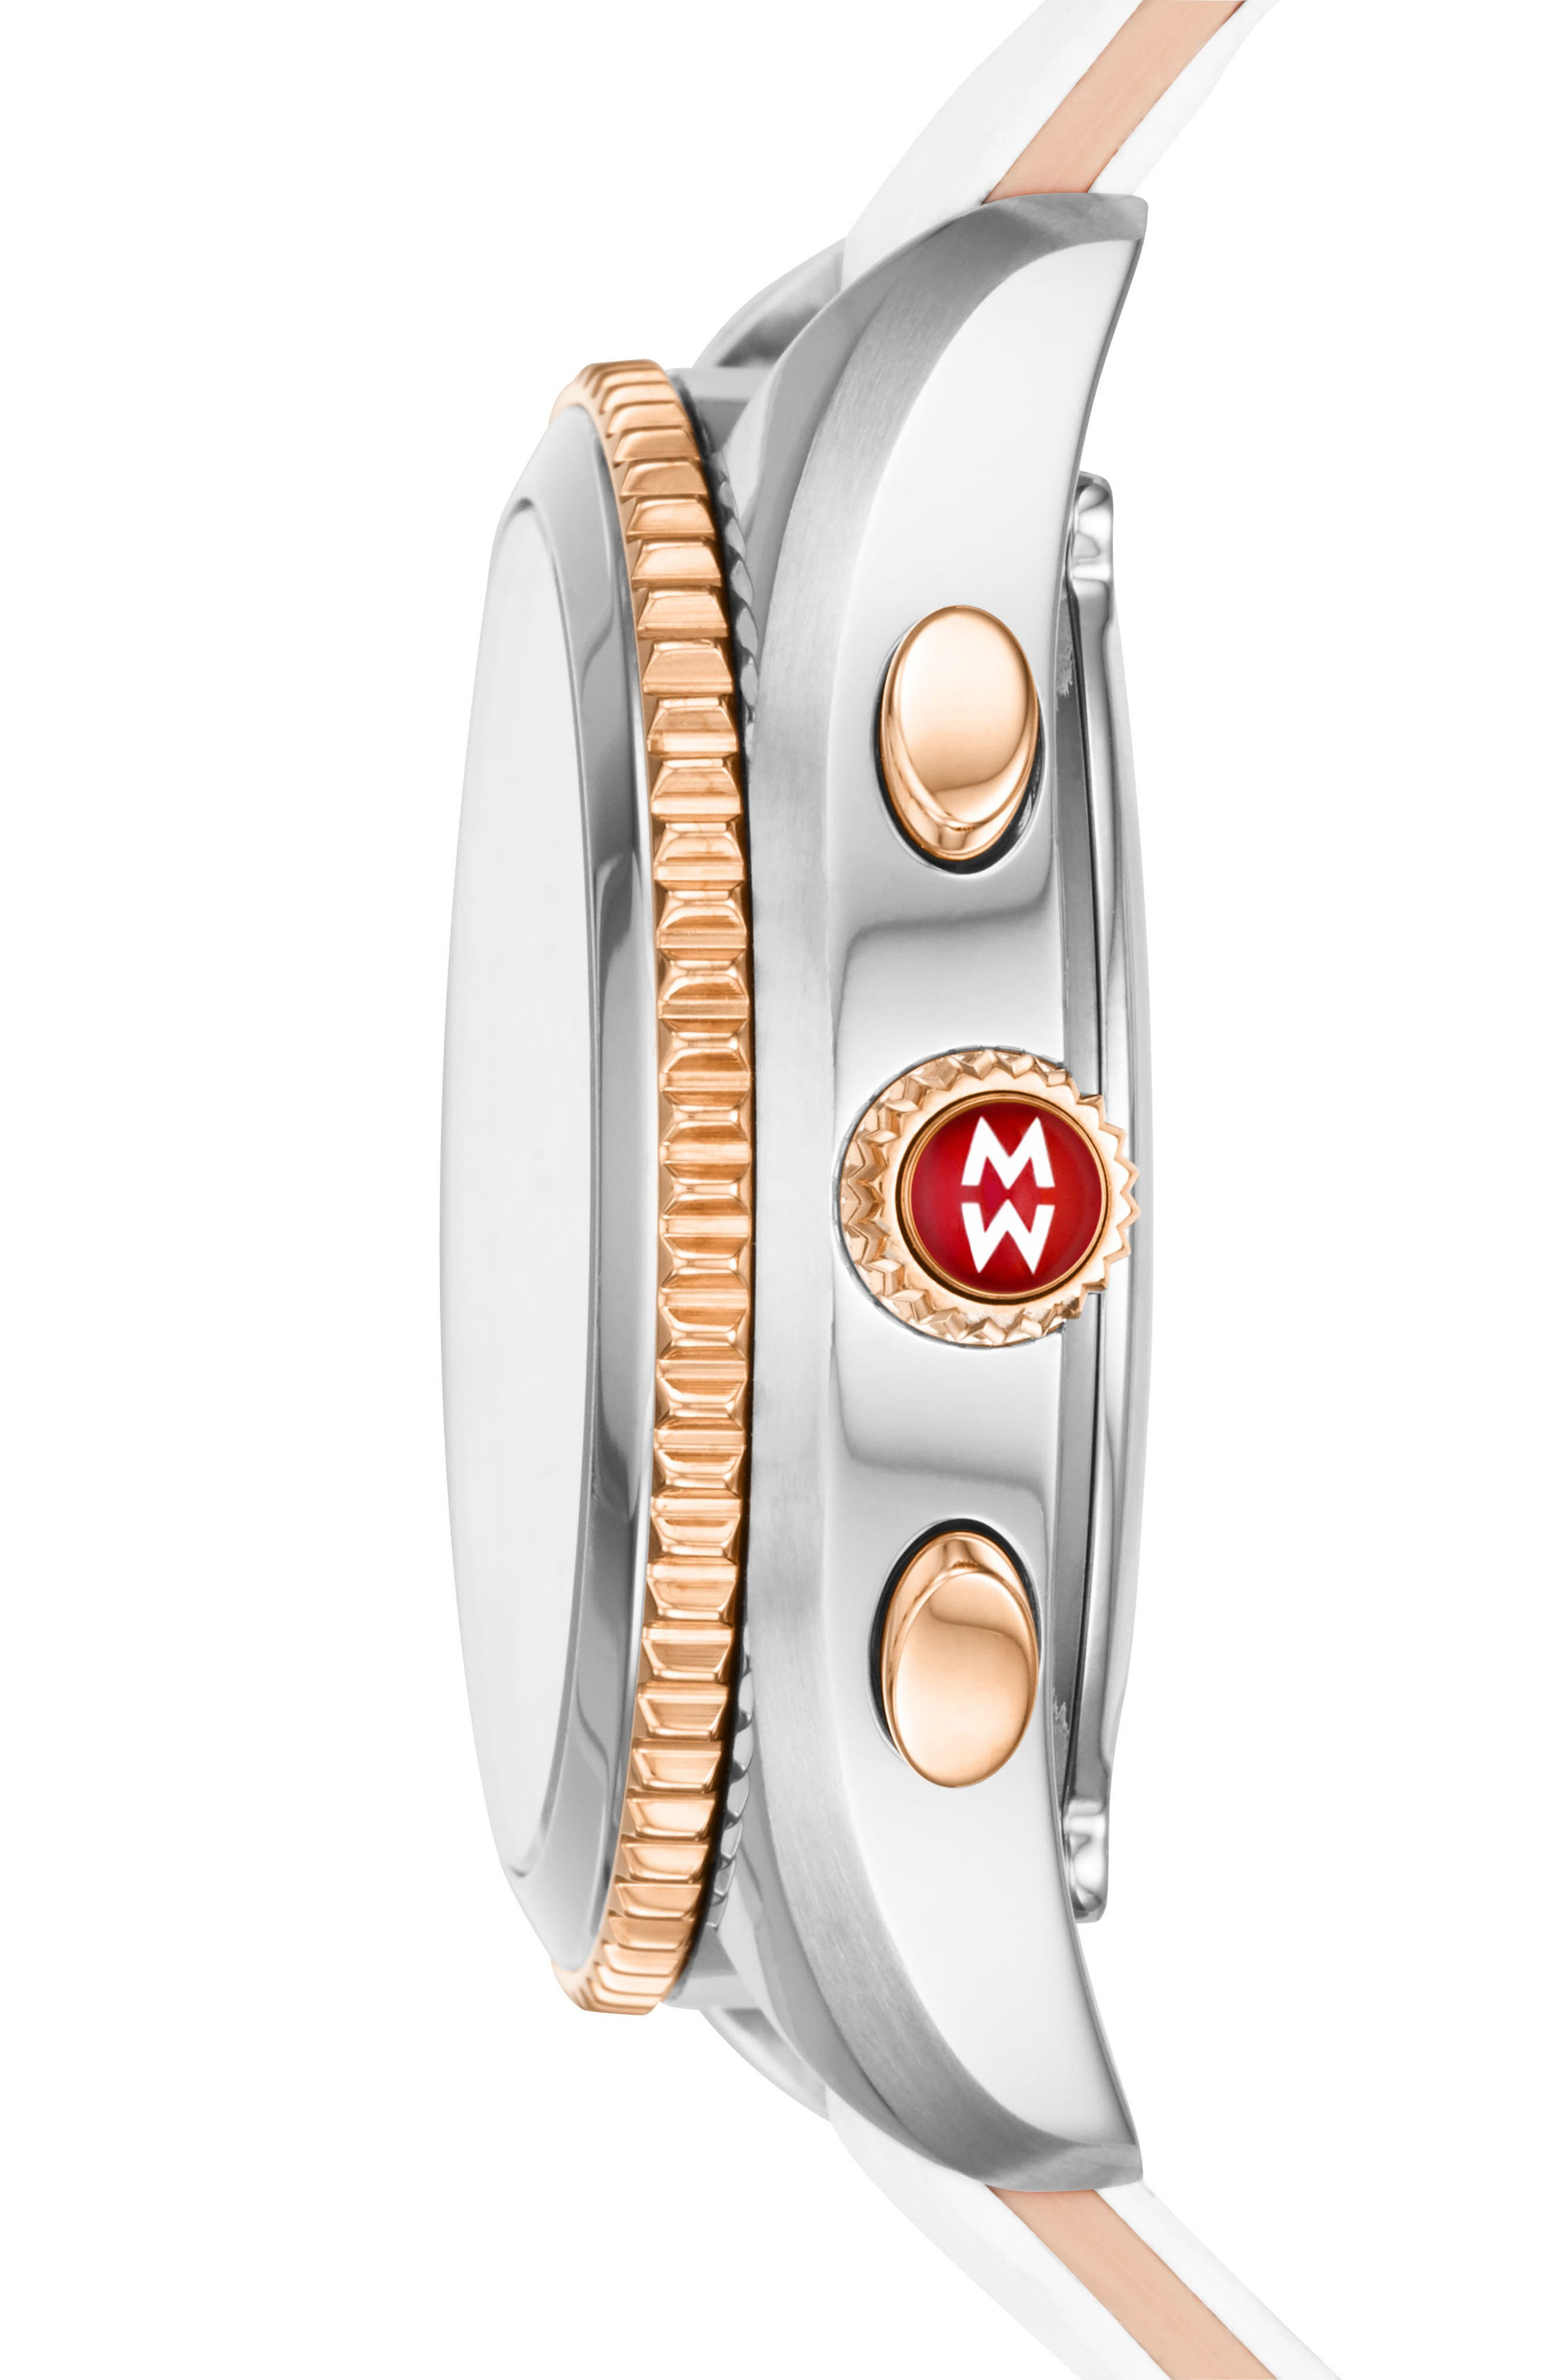 MICHELE, Hybrid Tracker Smart Watch, 38mm, Alternate thumbnail 3, color, WHITE/ SILVER/ ROSE GOLD